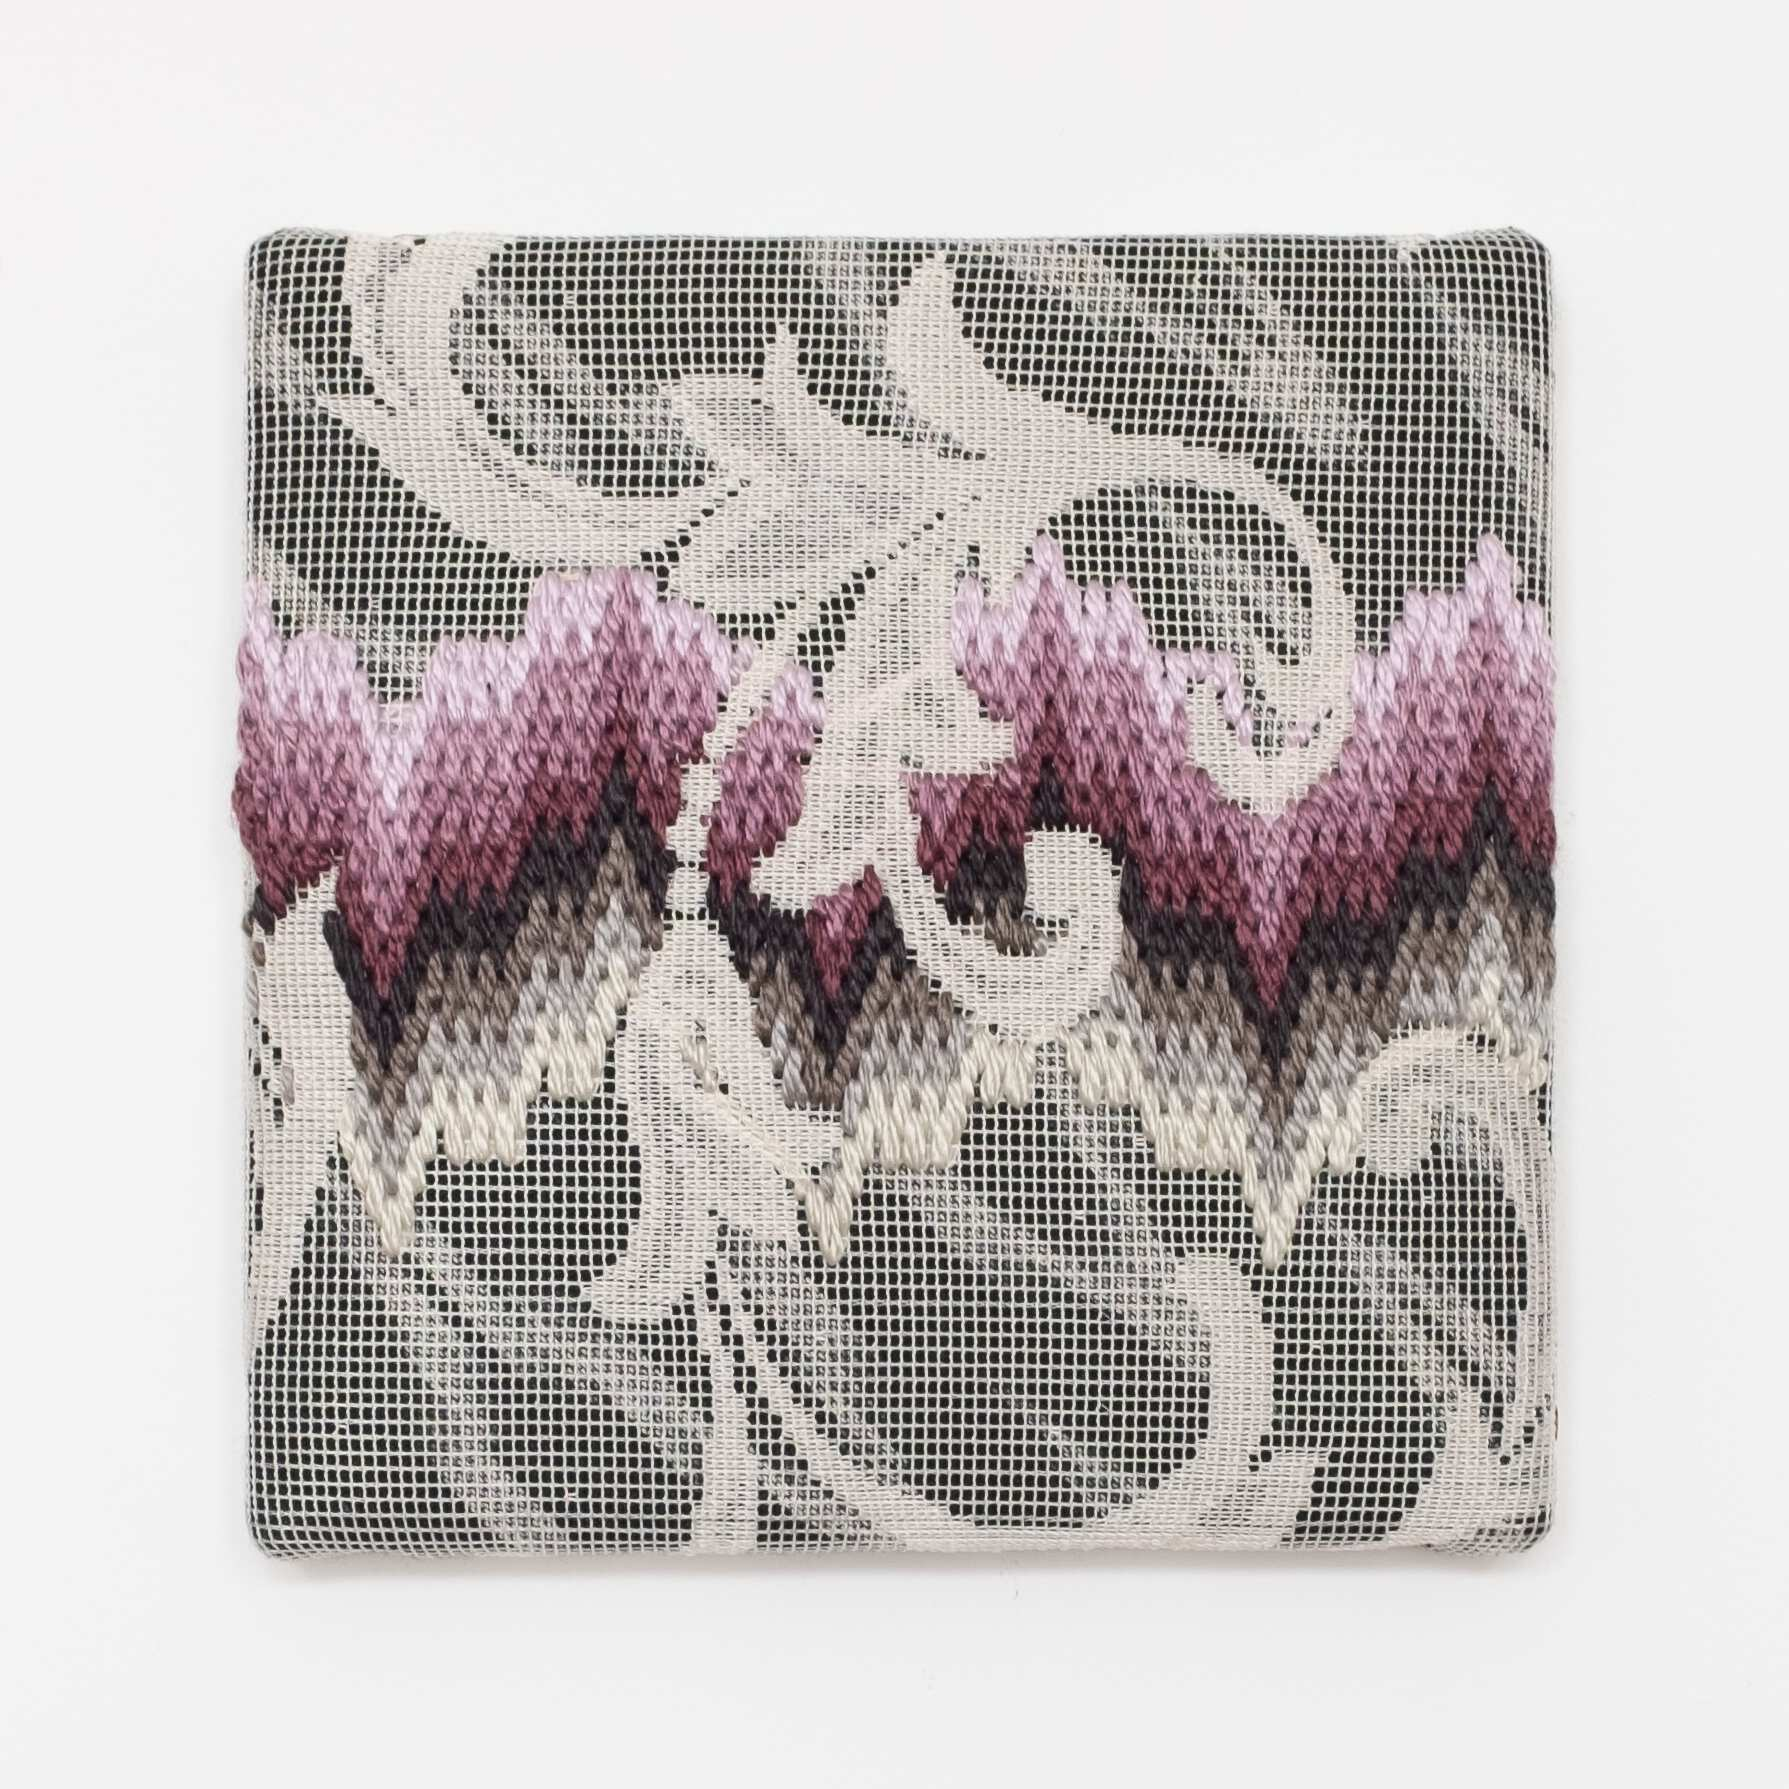 Triple-layer gather-gusset [purple-grey northern lights], Hand-embroidered silk on lace over fabric, 2019